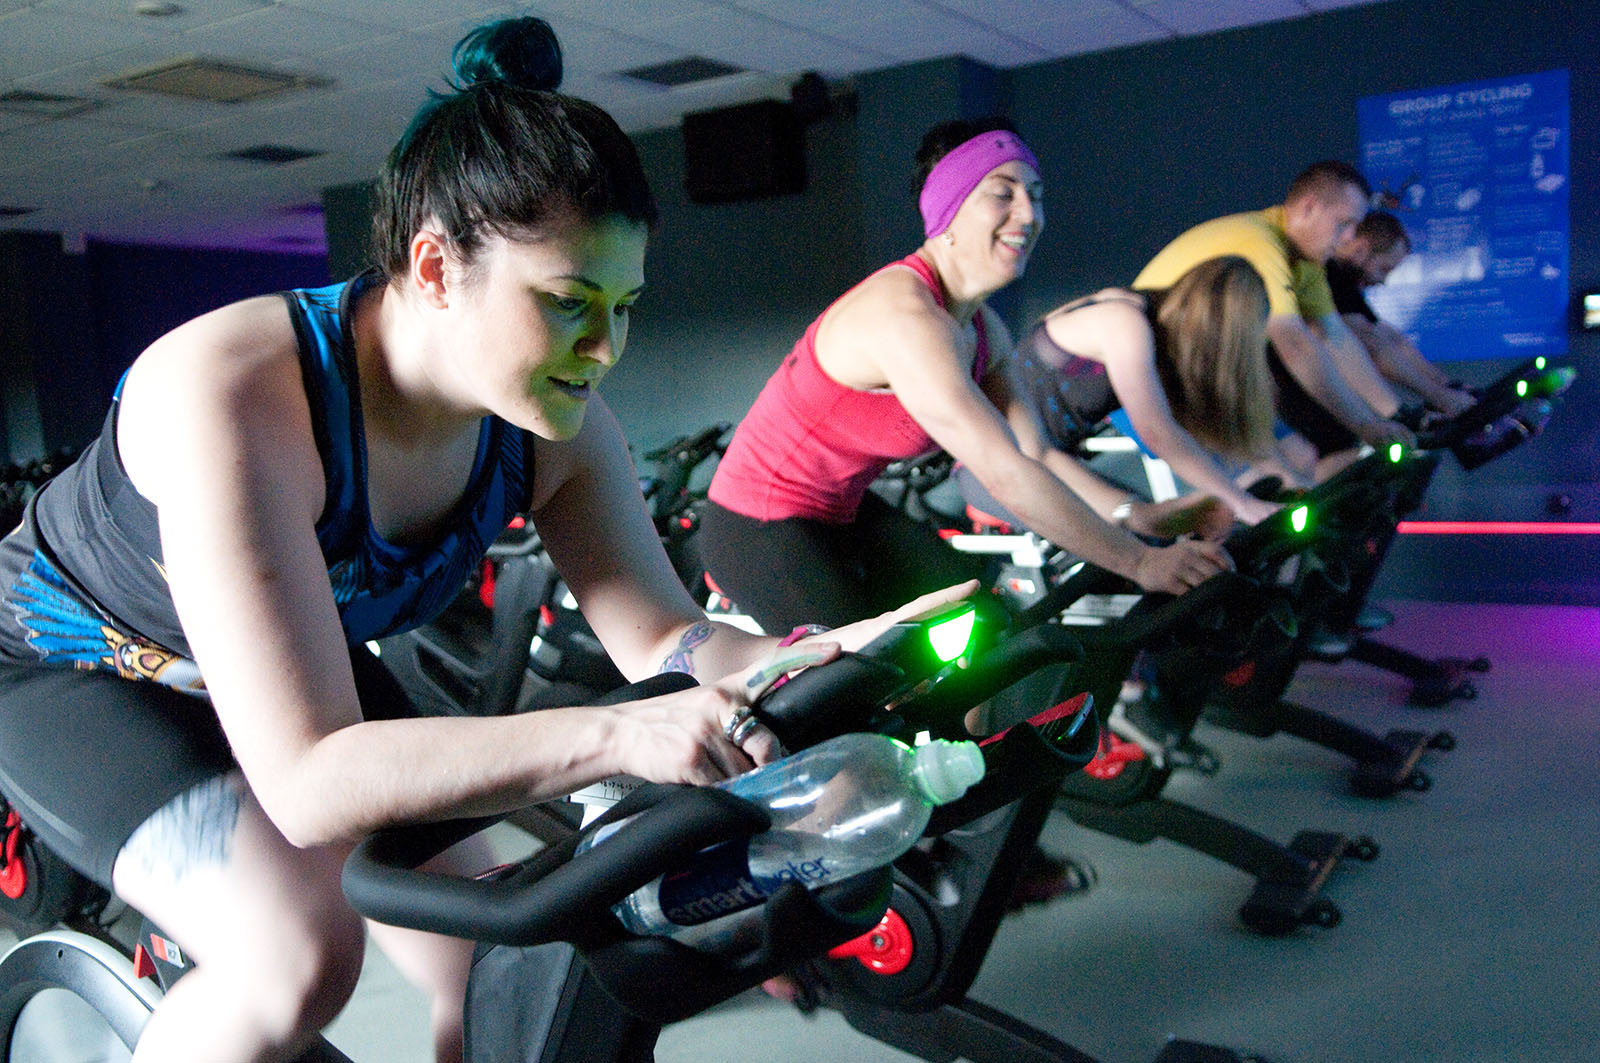 group of women riding on indoor cycling equipment